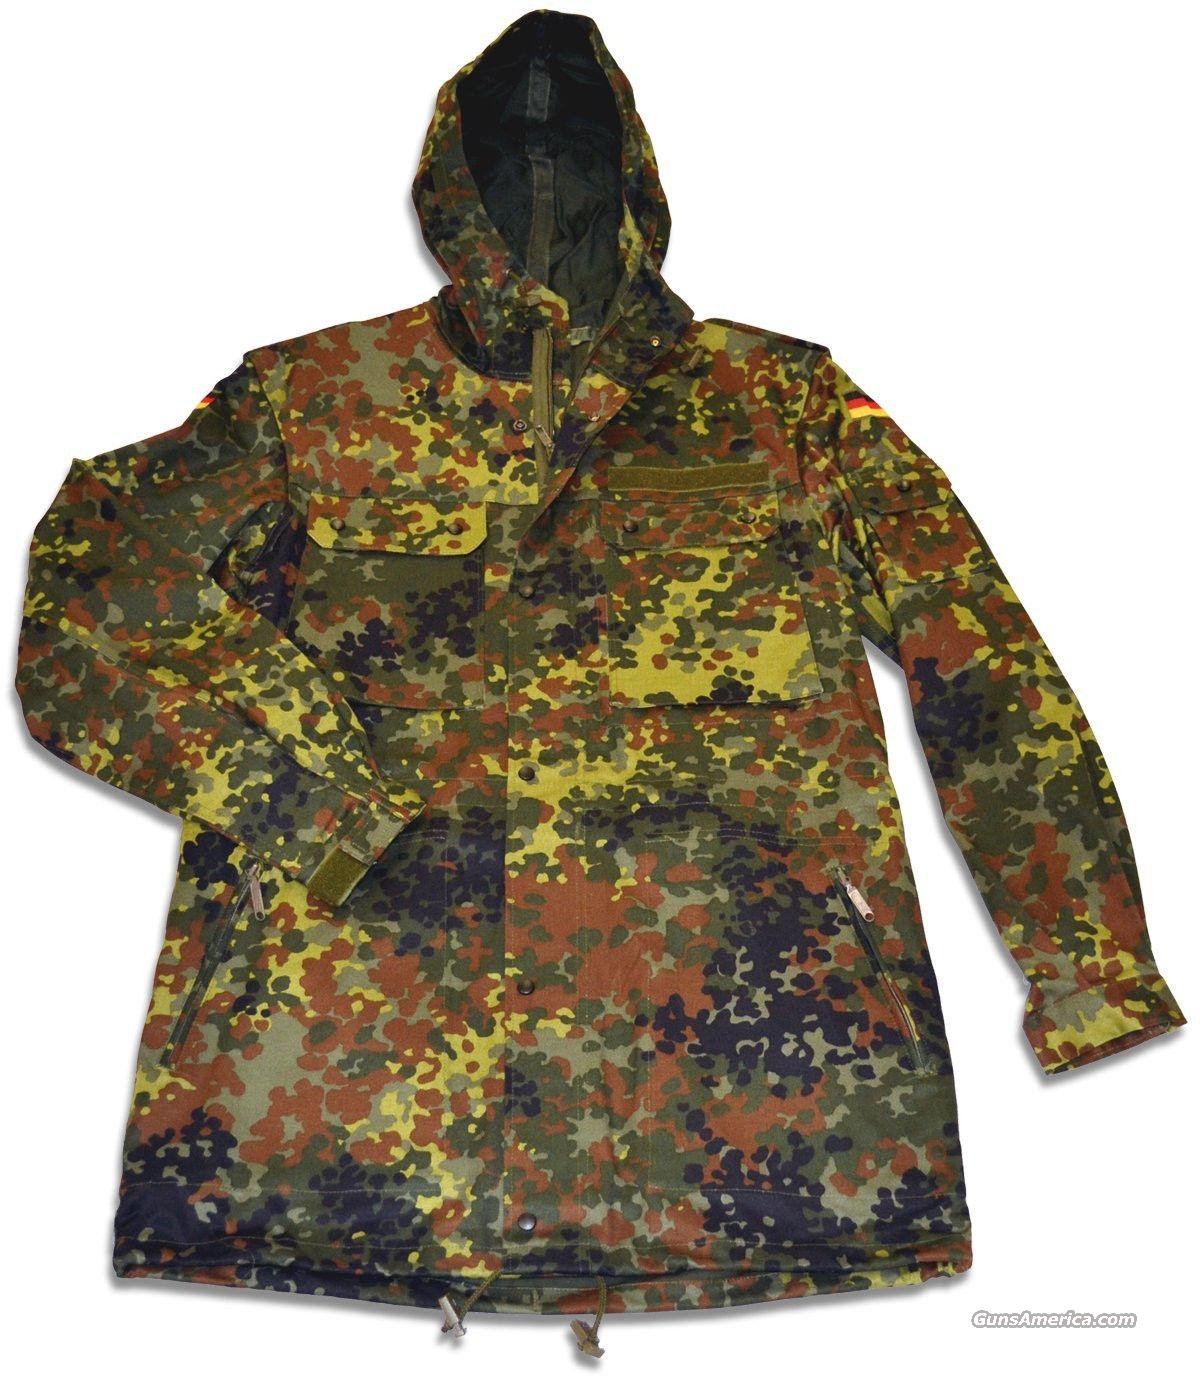 WAREHOUSE BLOWOUT! DEALER LOT OF 10 NEW GERMAN FLECKTARN PARKAS  Non-Guns > Hunting Clothing and Equipment > Clothing > Camo Outerwear